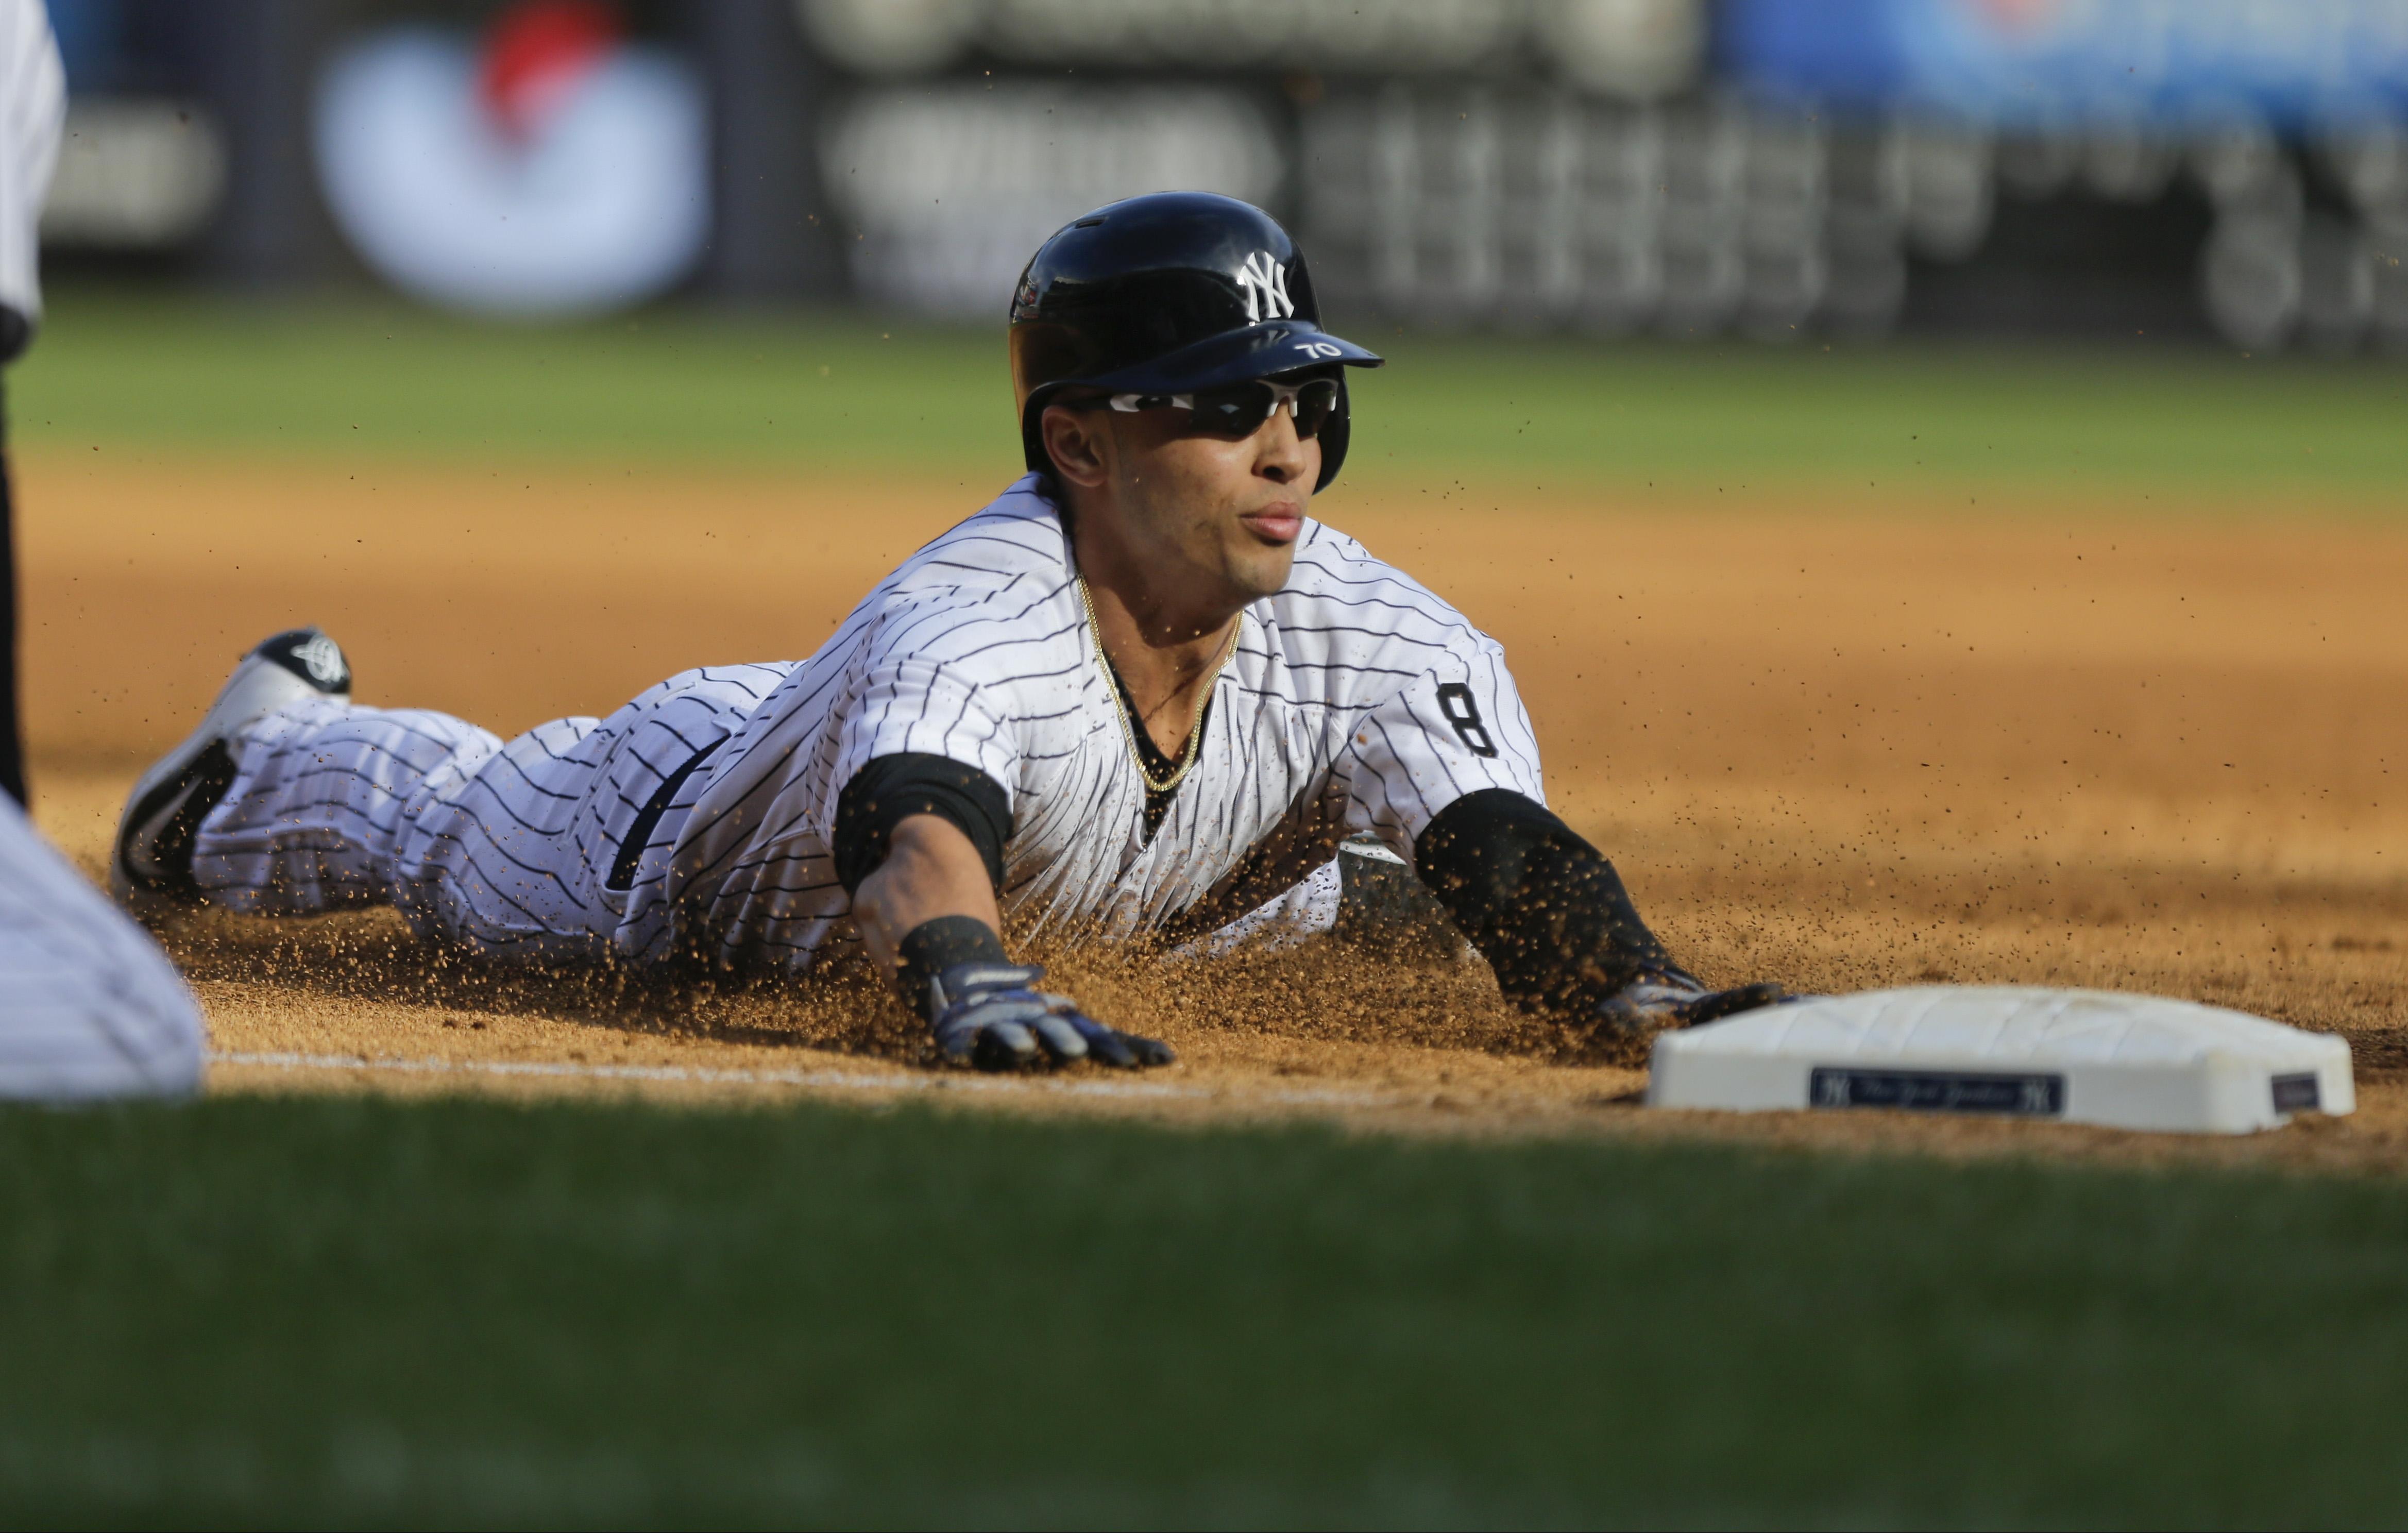 New York Yankees center fielder Rico Noel (70) sildes to third base after advancing on a throwing error by Chicago White Sox relief pitcher Daniel Webb on a pick off attempt during the eighth inning of a baseball game, Sunday, Sept. 27, 2015, in New York. (AP Photo/Frank Franklin II)